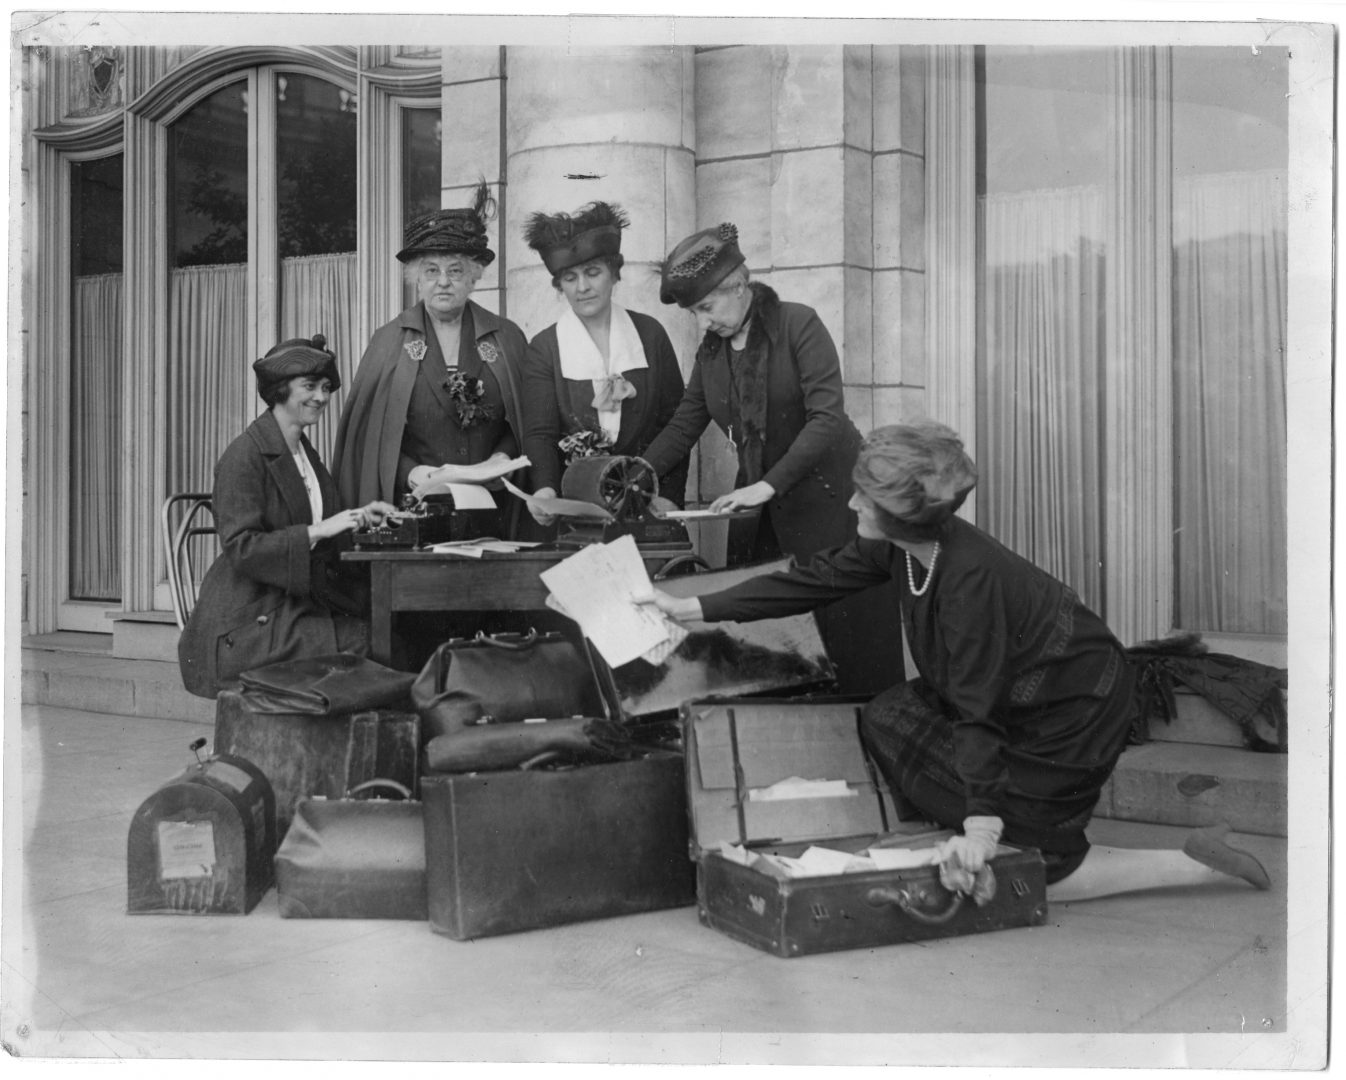 Five suffragists, including Marie Stuart Edwards (middle), a women's rights activist and reformer from Peru, Indiana, stand at a desk on the sidewalk with luggage during their western tour on behalf of the women's suffrage movement.